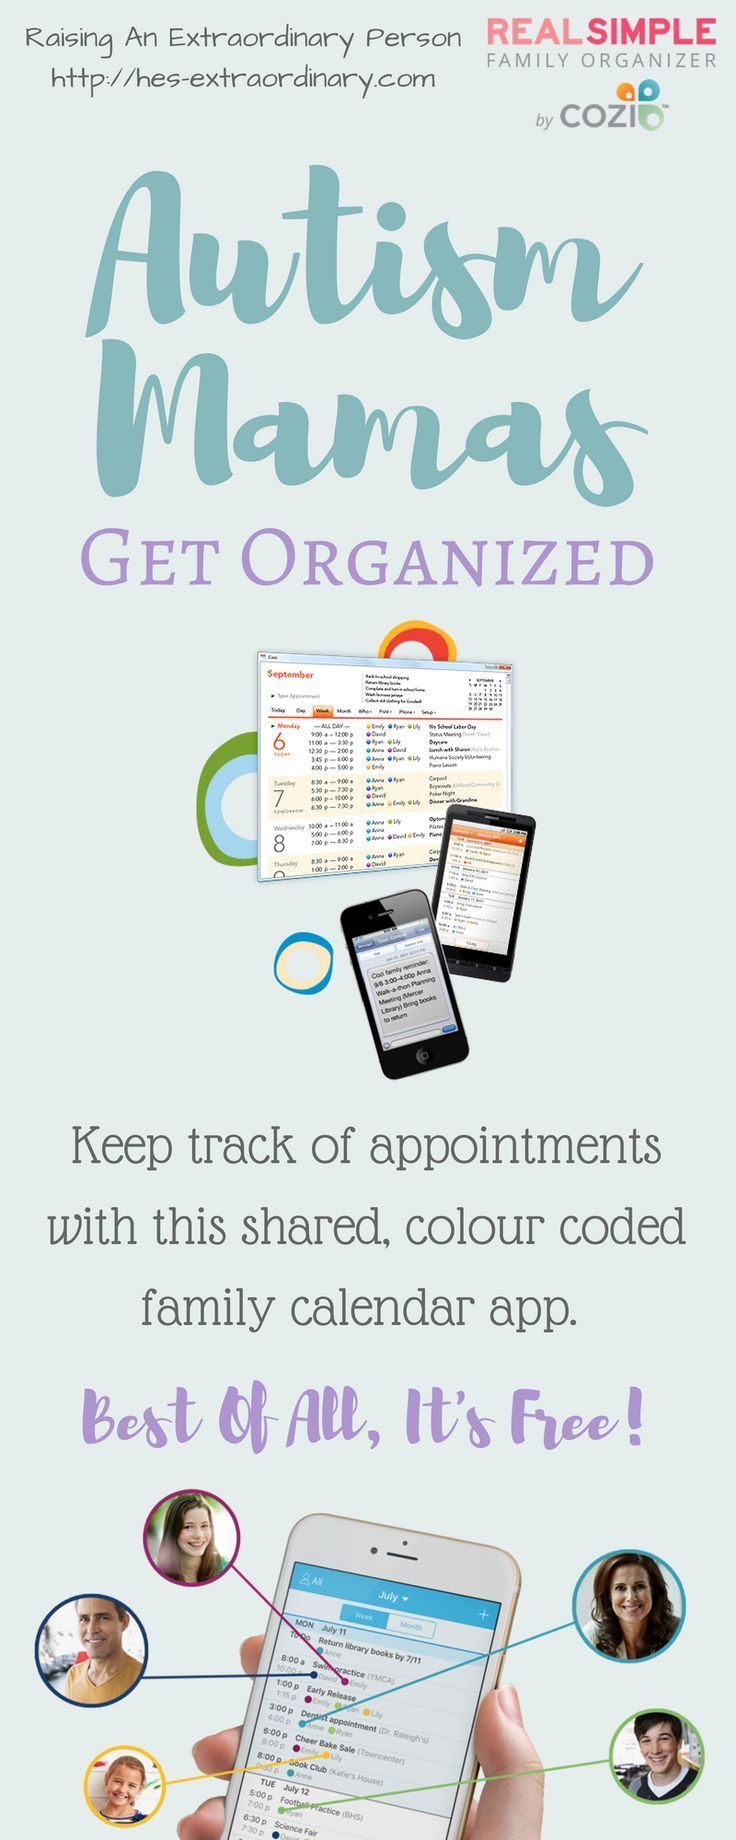 Ad. Organize Your Family's Busy Schedules! Cozi can be